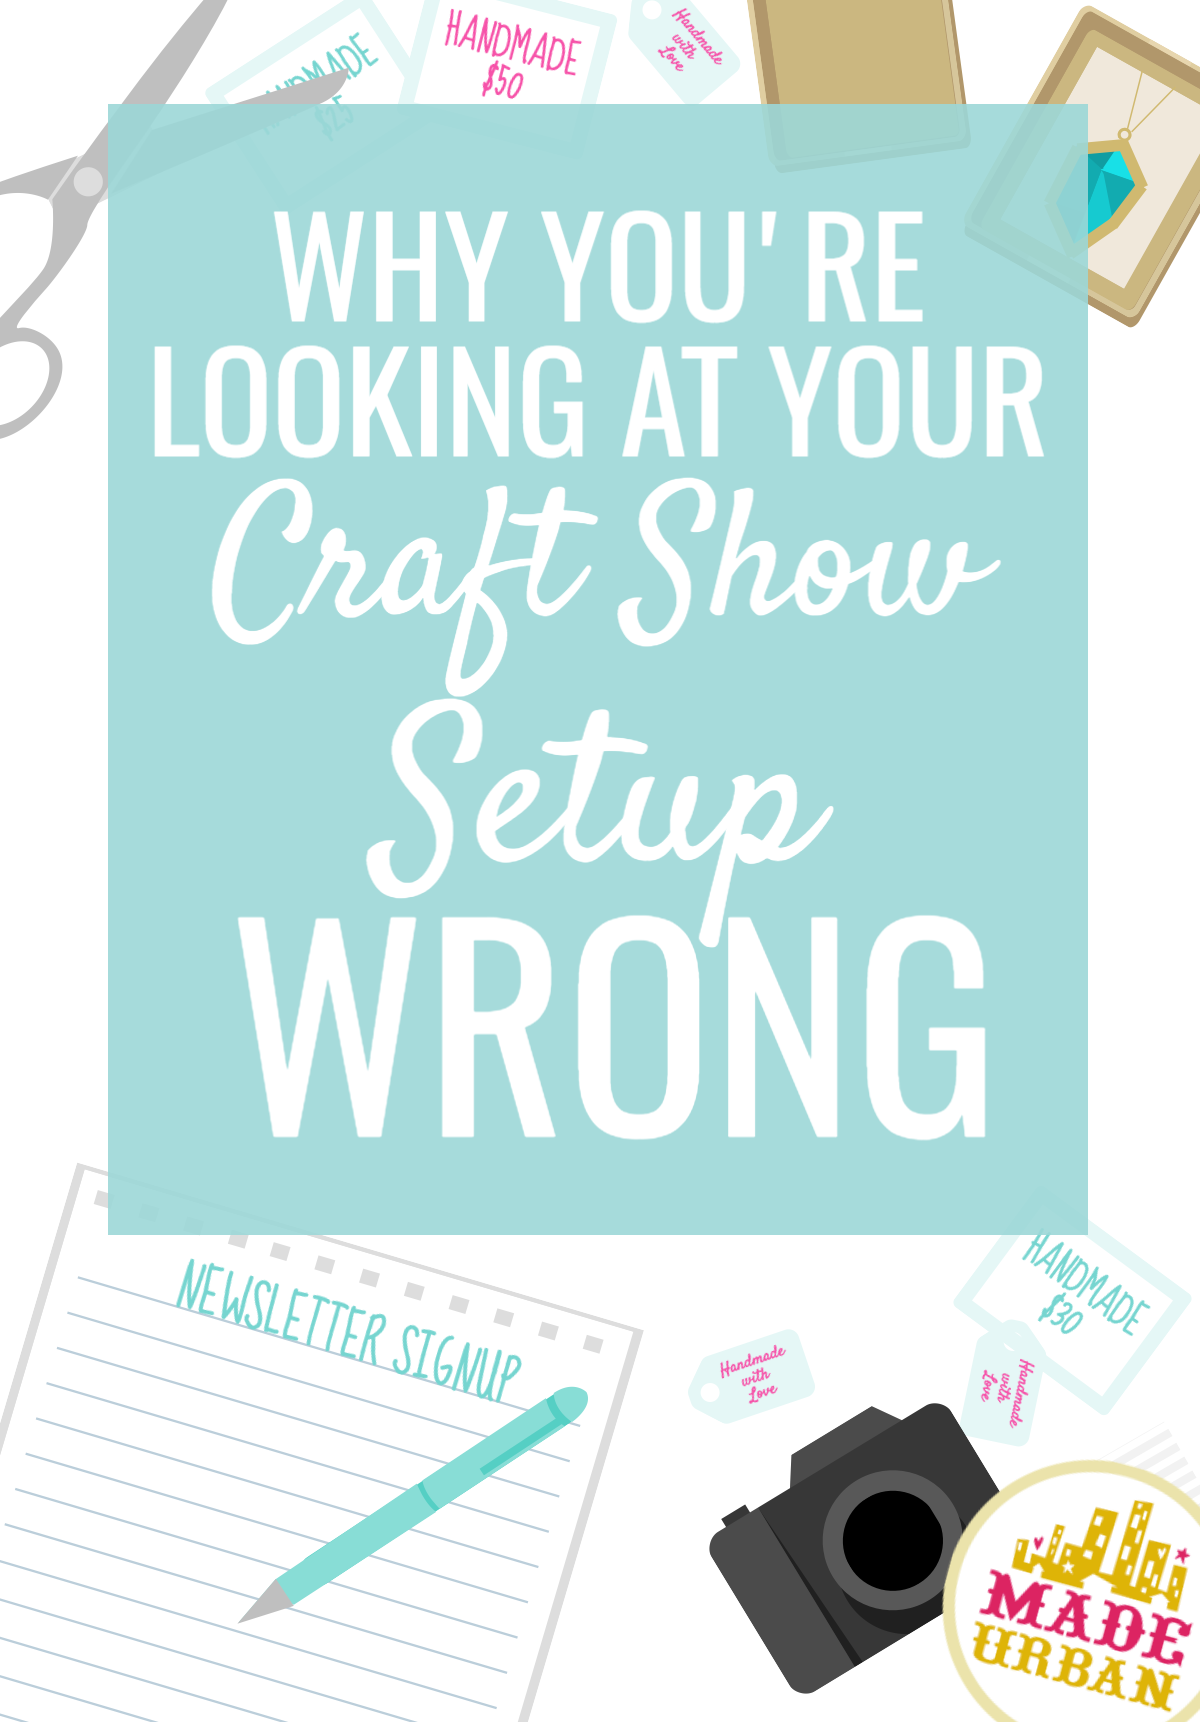 Most handmade vendors ignore these 3 important perspectives when it comes to their craft show setup. Find out what they are and how to fix any issues.